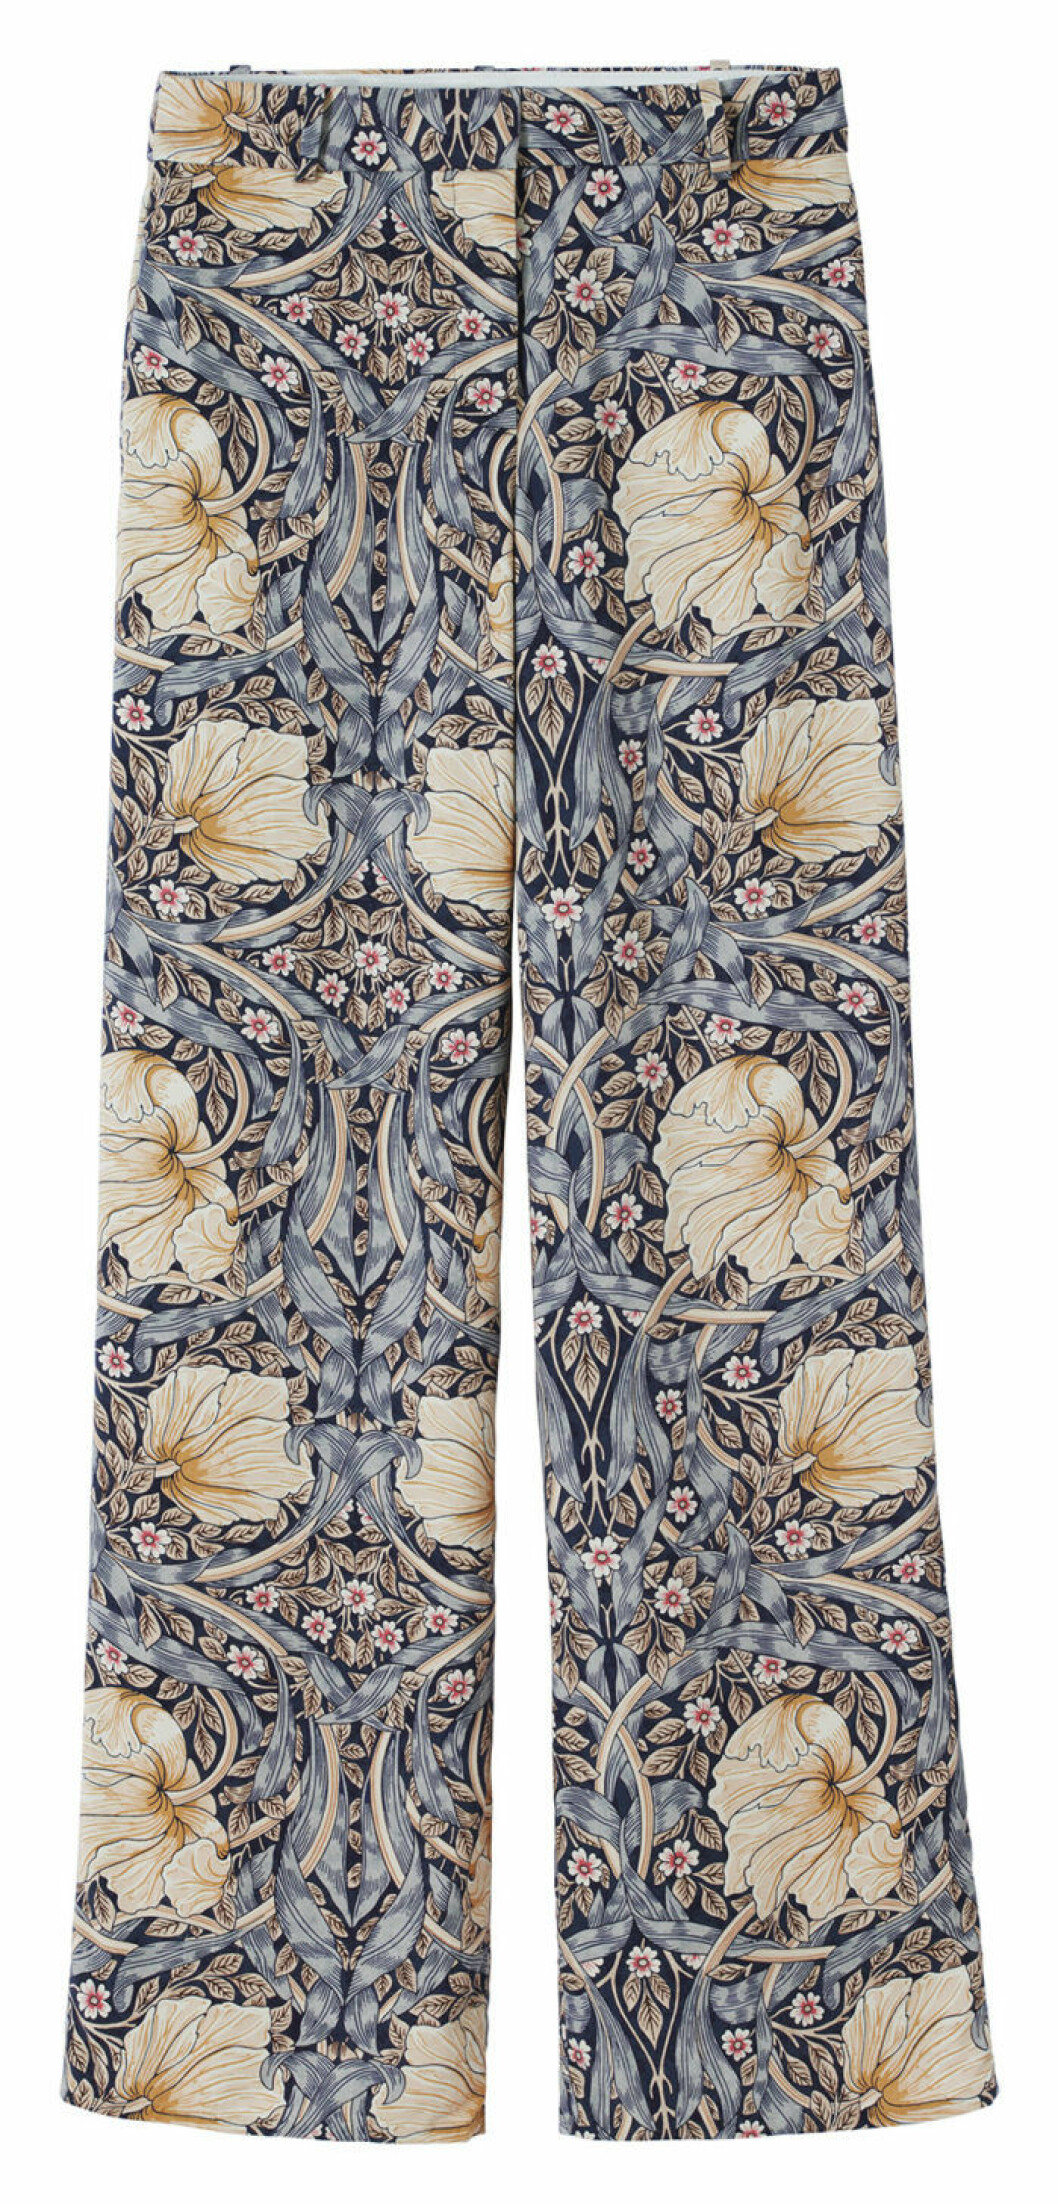 Byxor William Morris pimpernell H&M